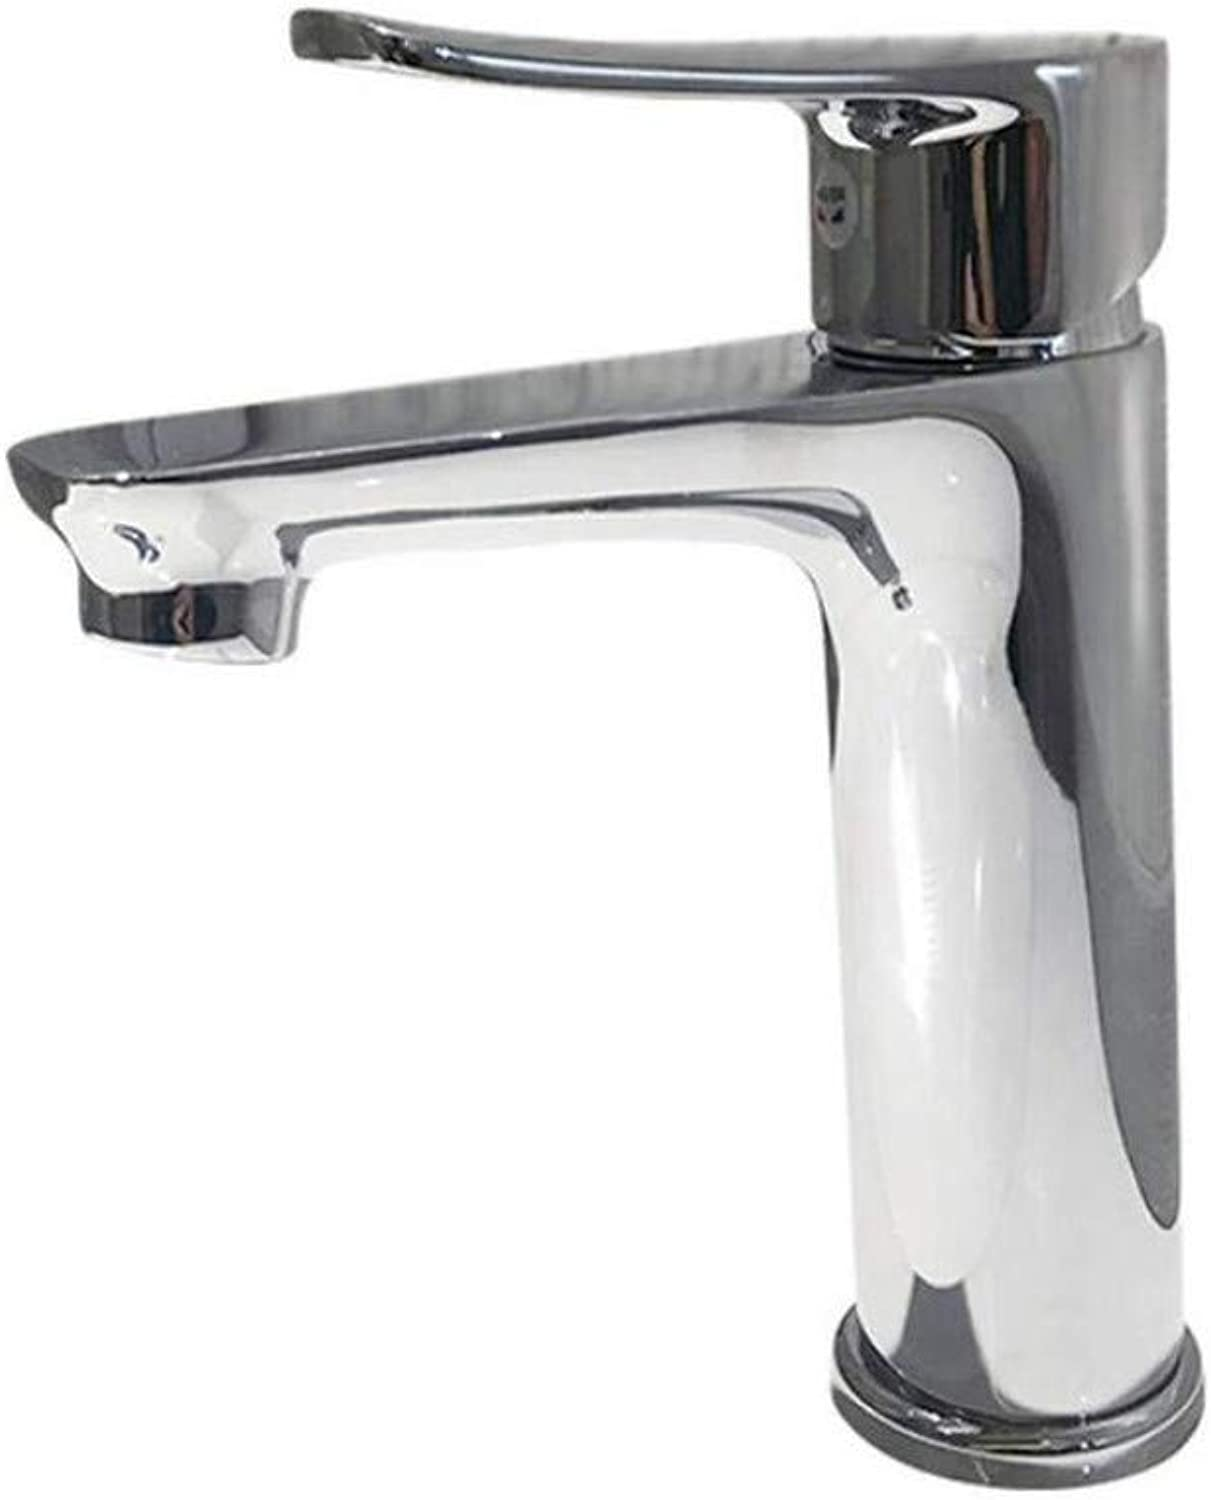 Taps Kitchen Sinkdirect Brass Single Hole Bathroom Basin Mixer Faucet